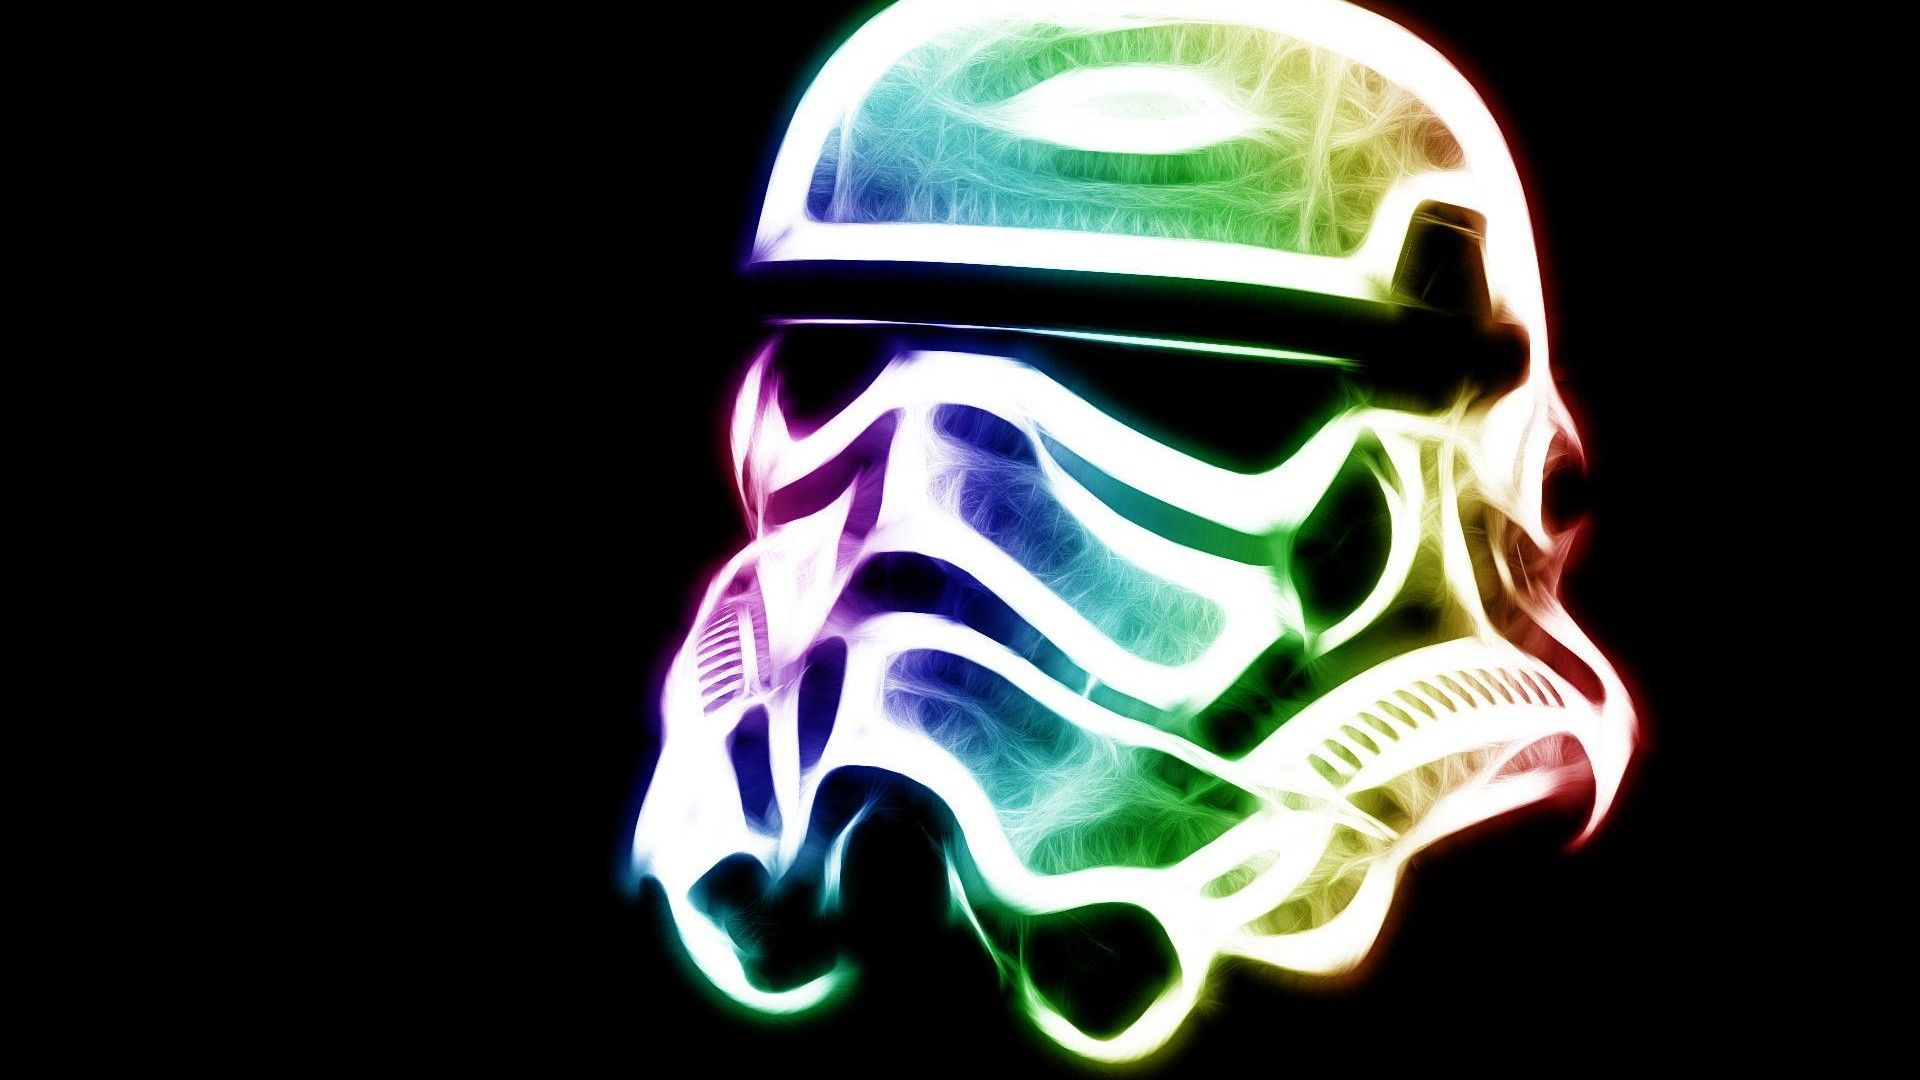 Awesome Stormtrooper Wallpapers Top Free Awesome Stormtrooper Backgrounds Wallpaperaccess